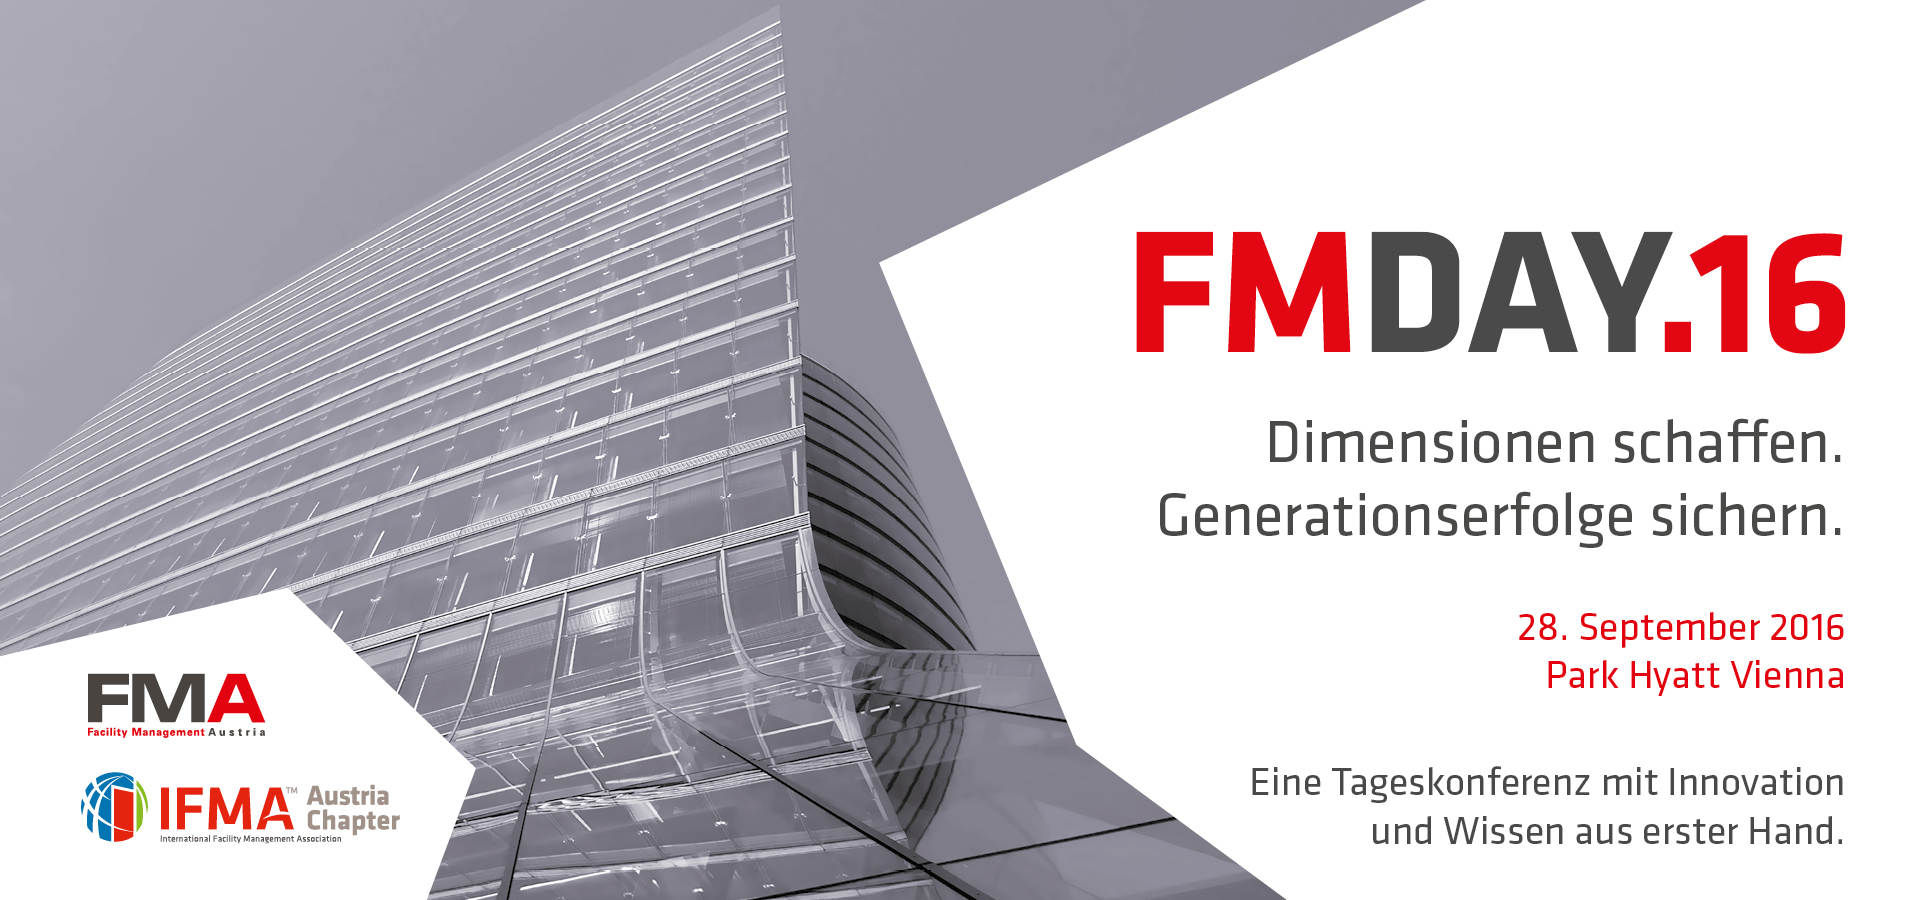 FM-Day 2016 Dimensionen schaffen. Generationserfolge sichern. 28. September 2016 Park Hyatt Vienna